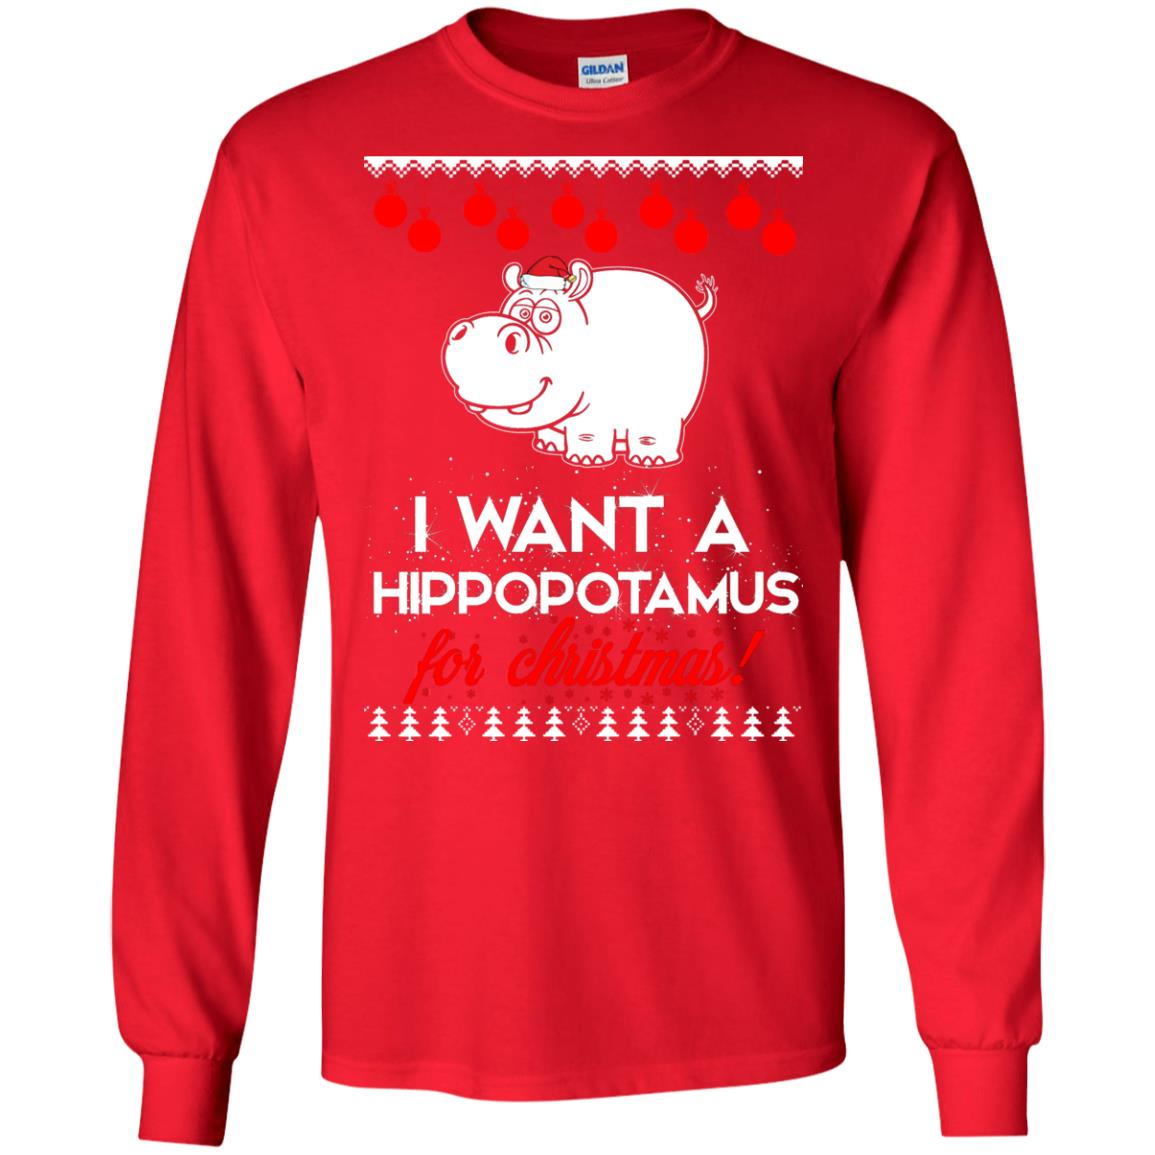 All I Want For Christmas Is A Hippopotamus.I Want A Hippopotamus For Christmas Ugly Sweater Hoodie